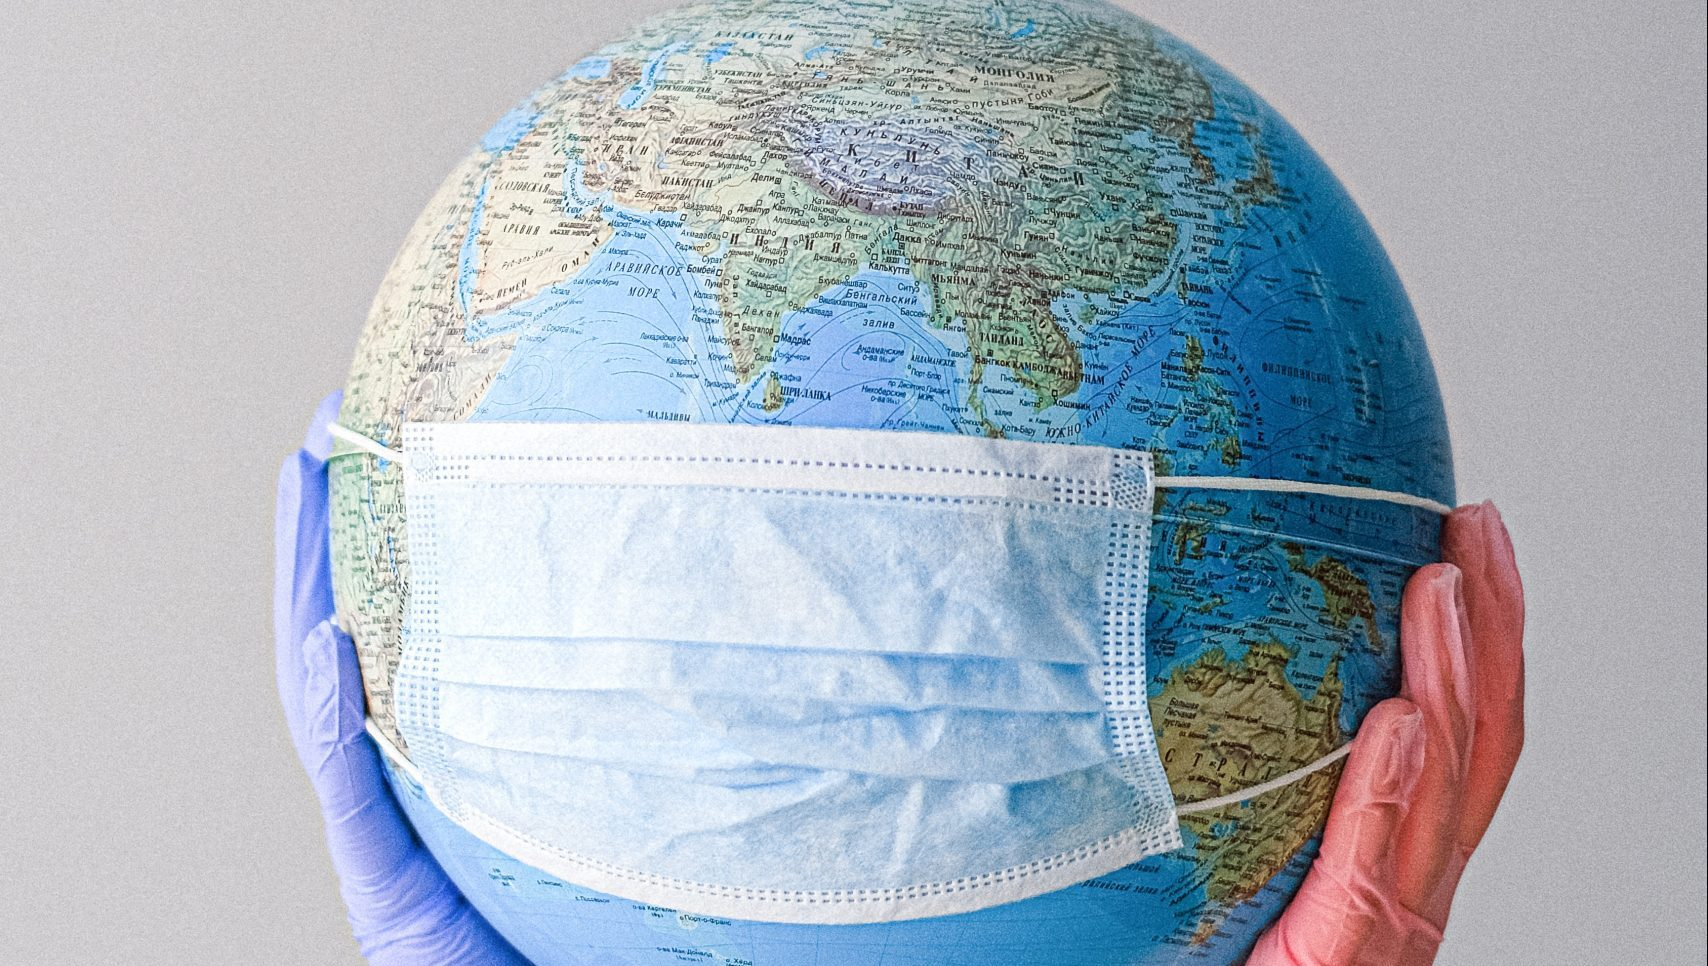 Covid-19 infections globally